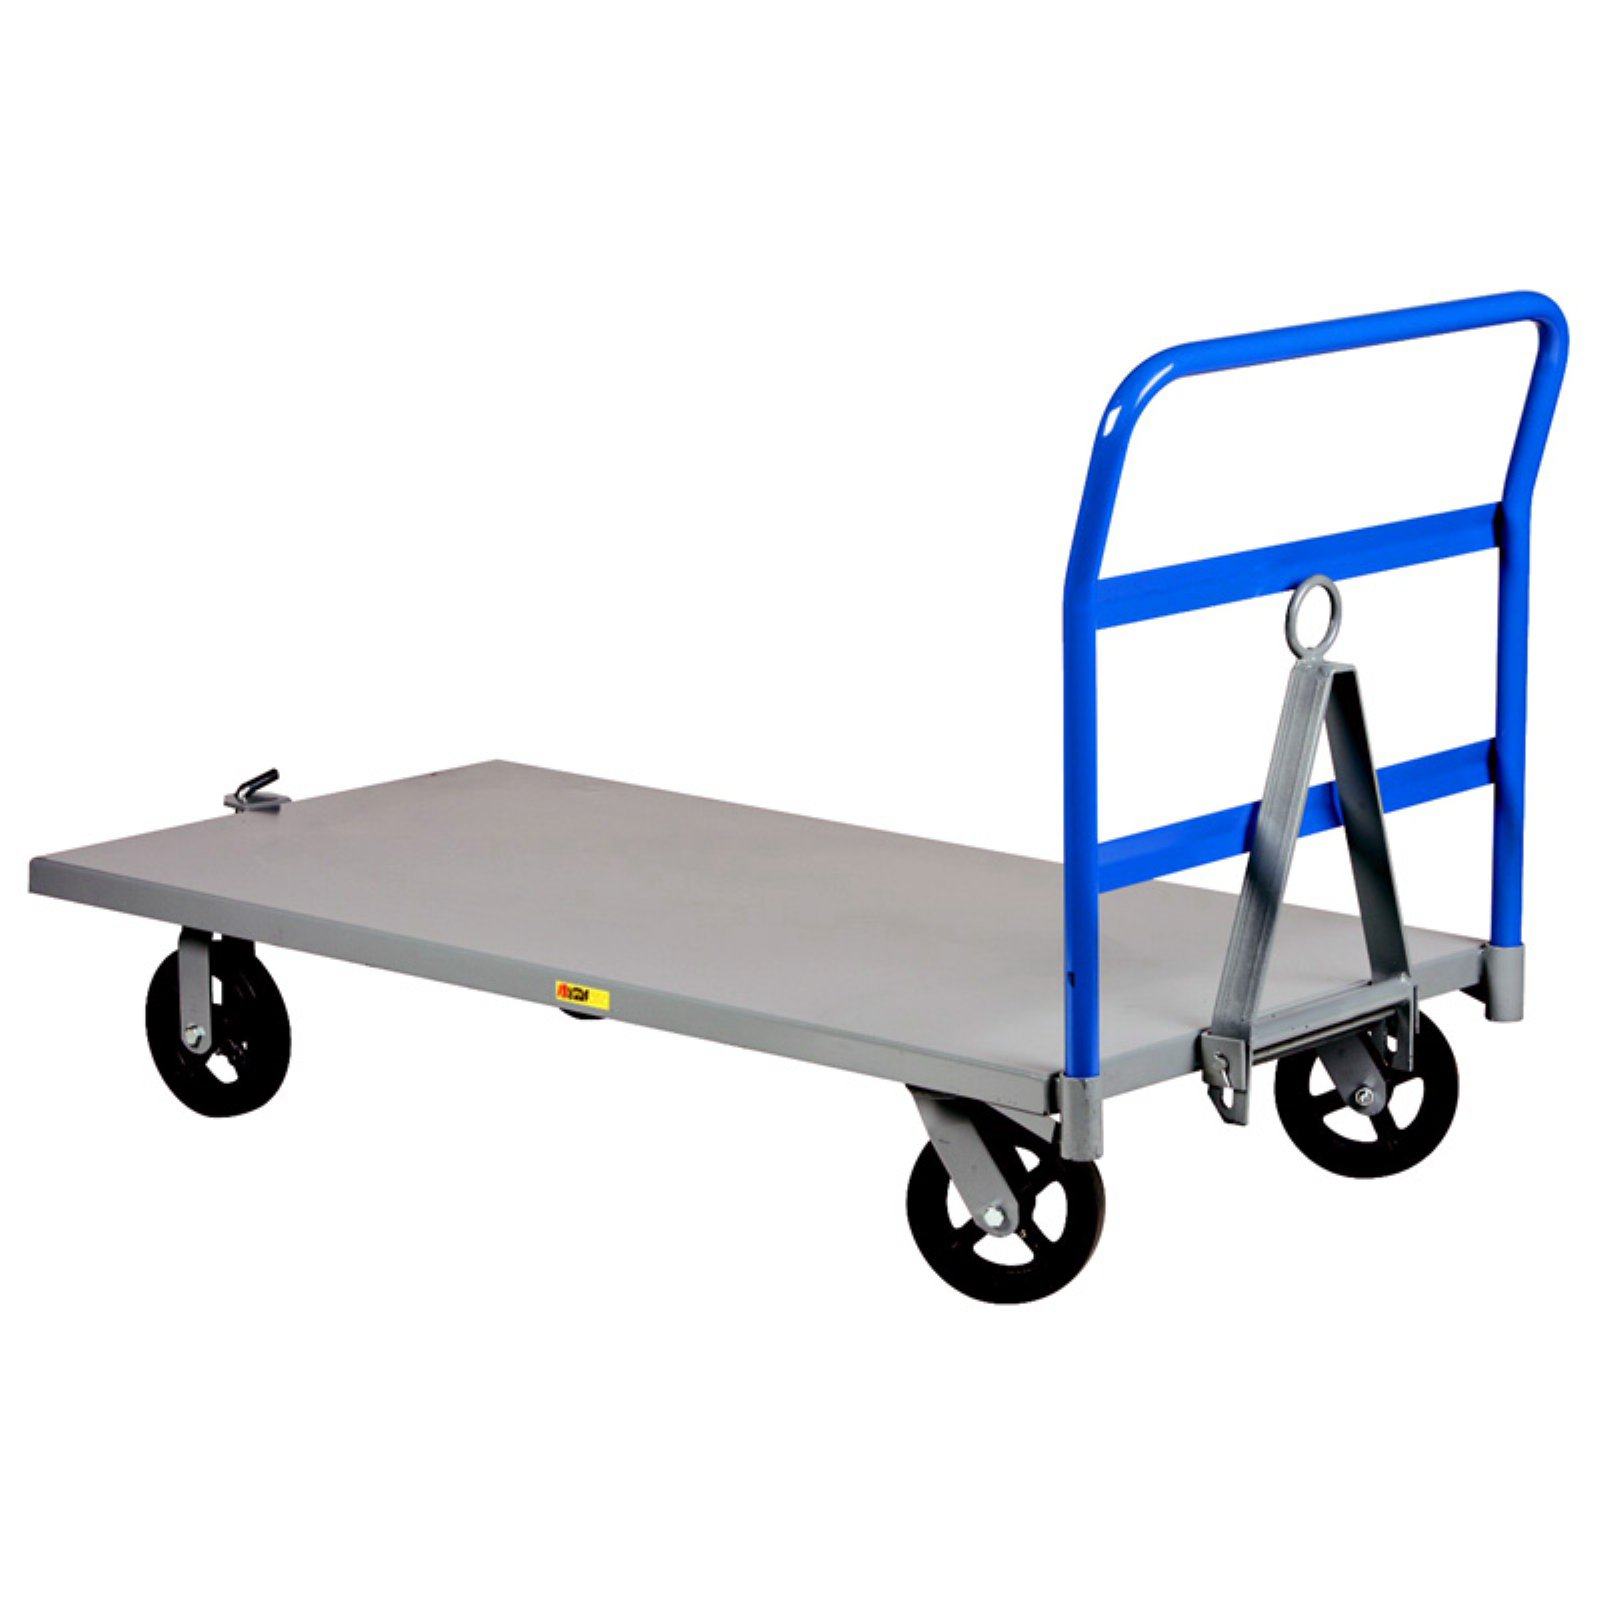 Little Giant Caster Steer Platform Cart Trailer